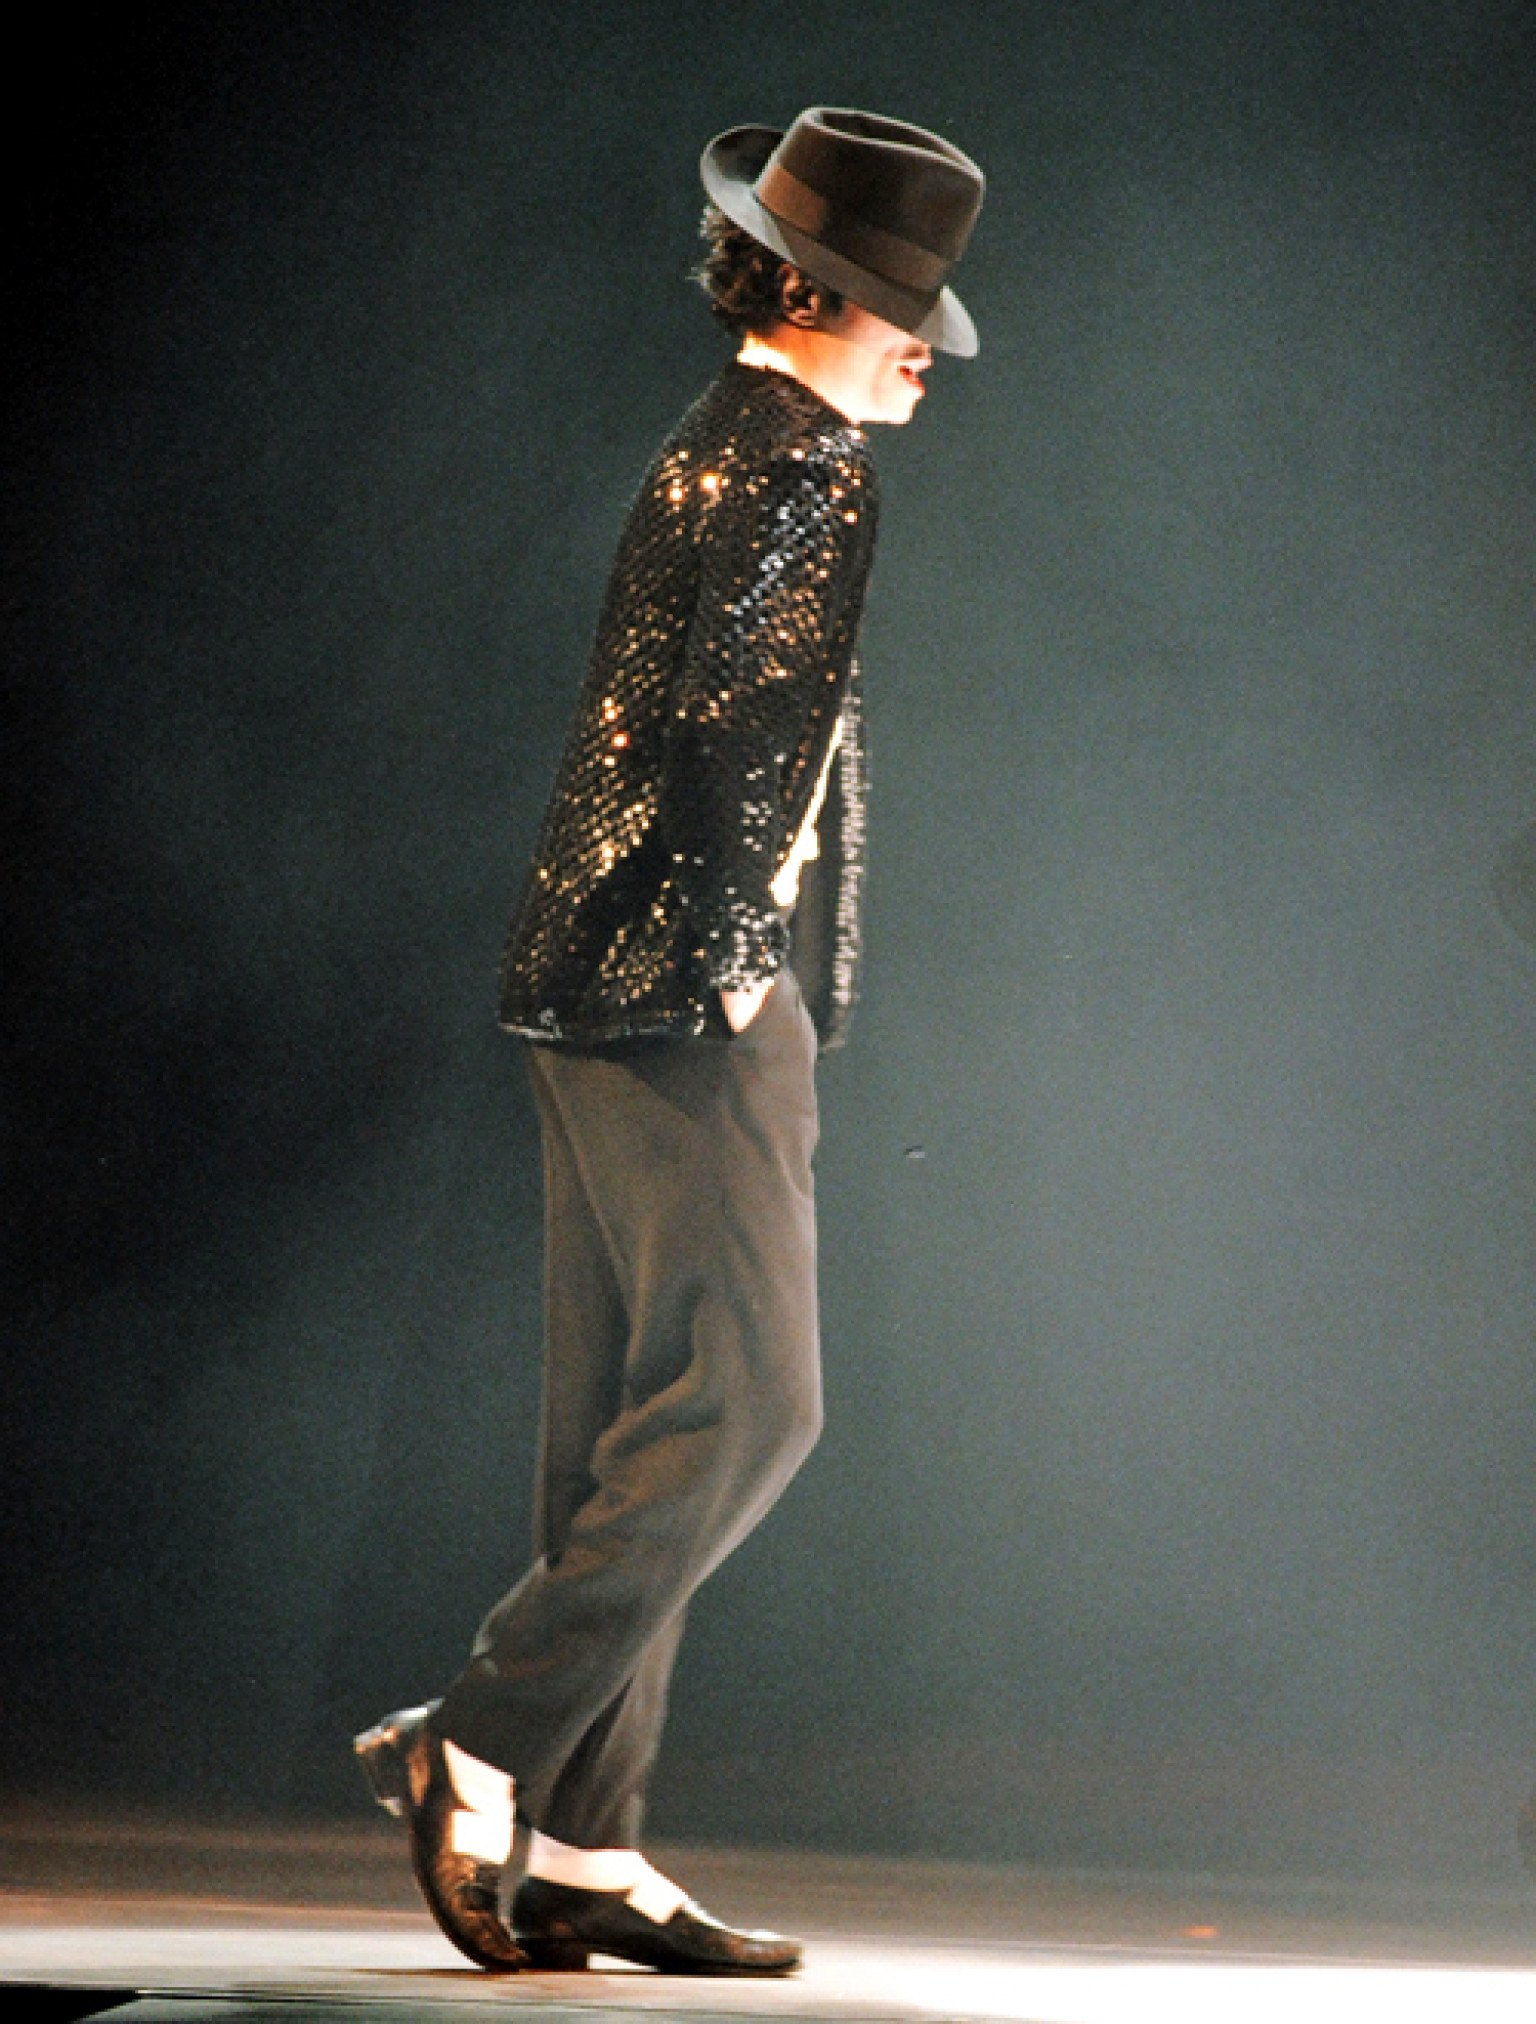 o moonwalk jackson facebook 20 Things You Didn't Know About Michael Jackson